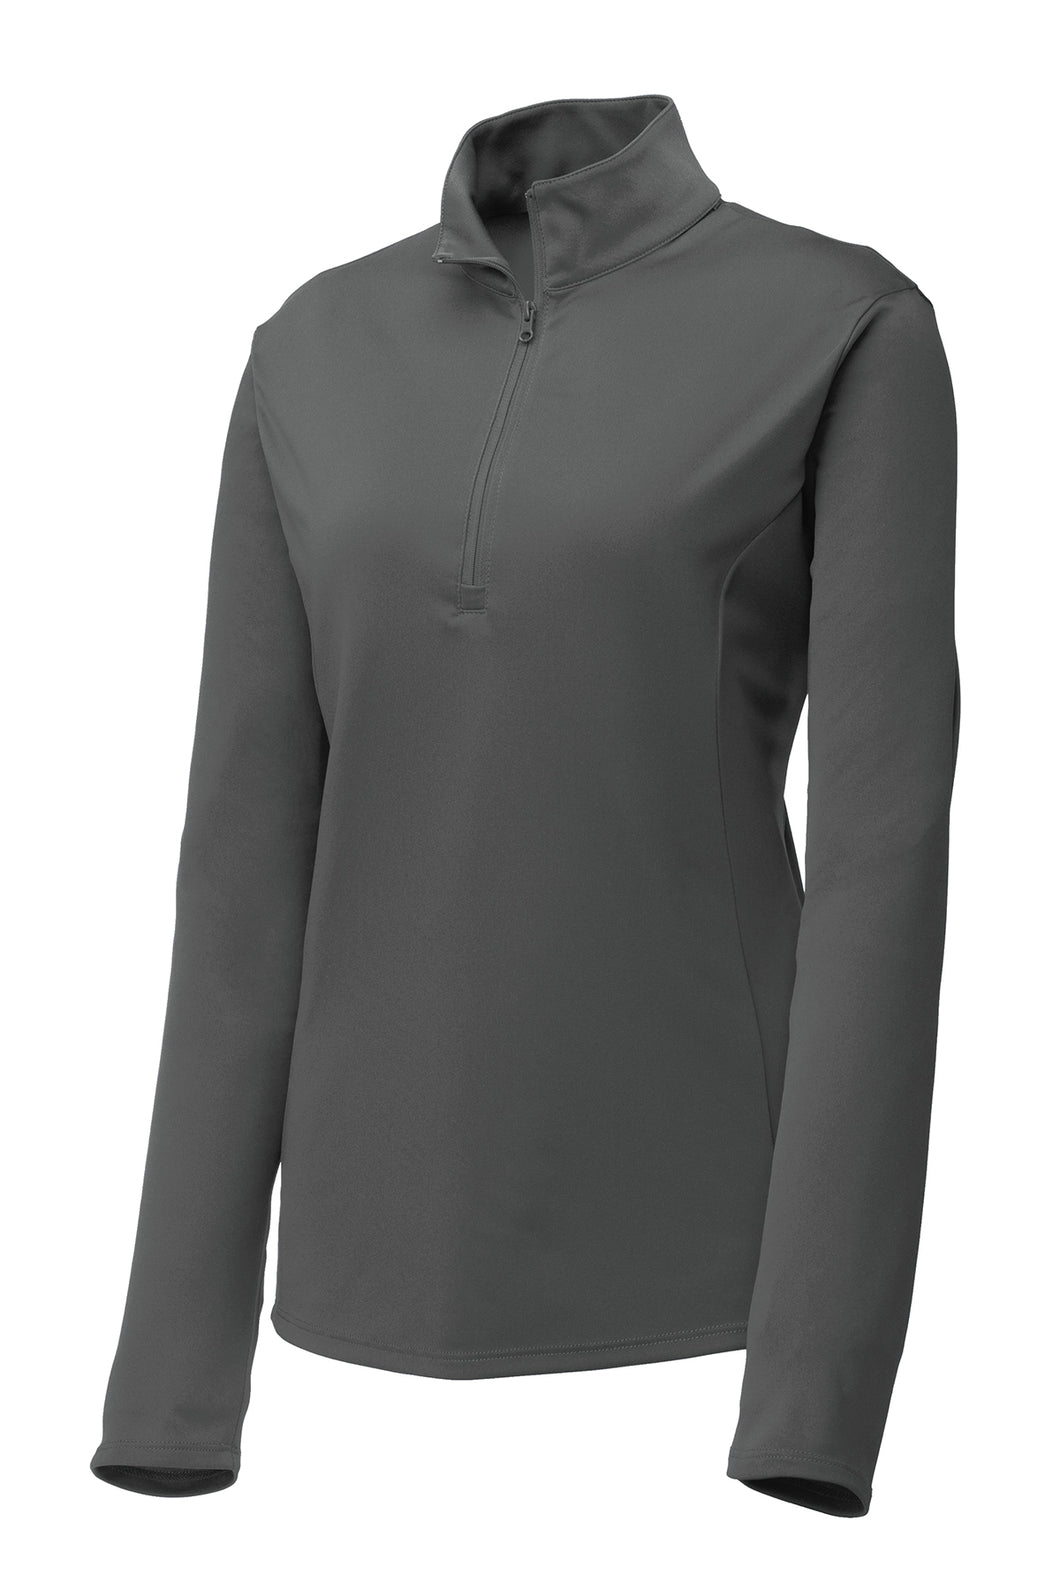 Ladies Quarter-zip Comfort Performance Pullover - Graphite